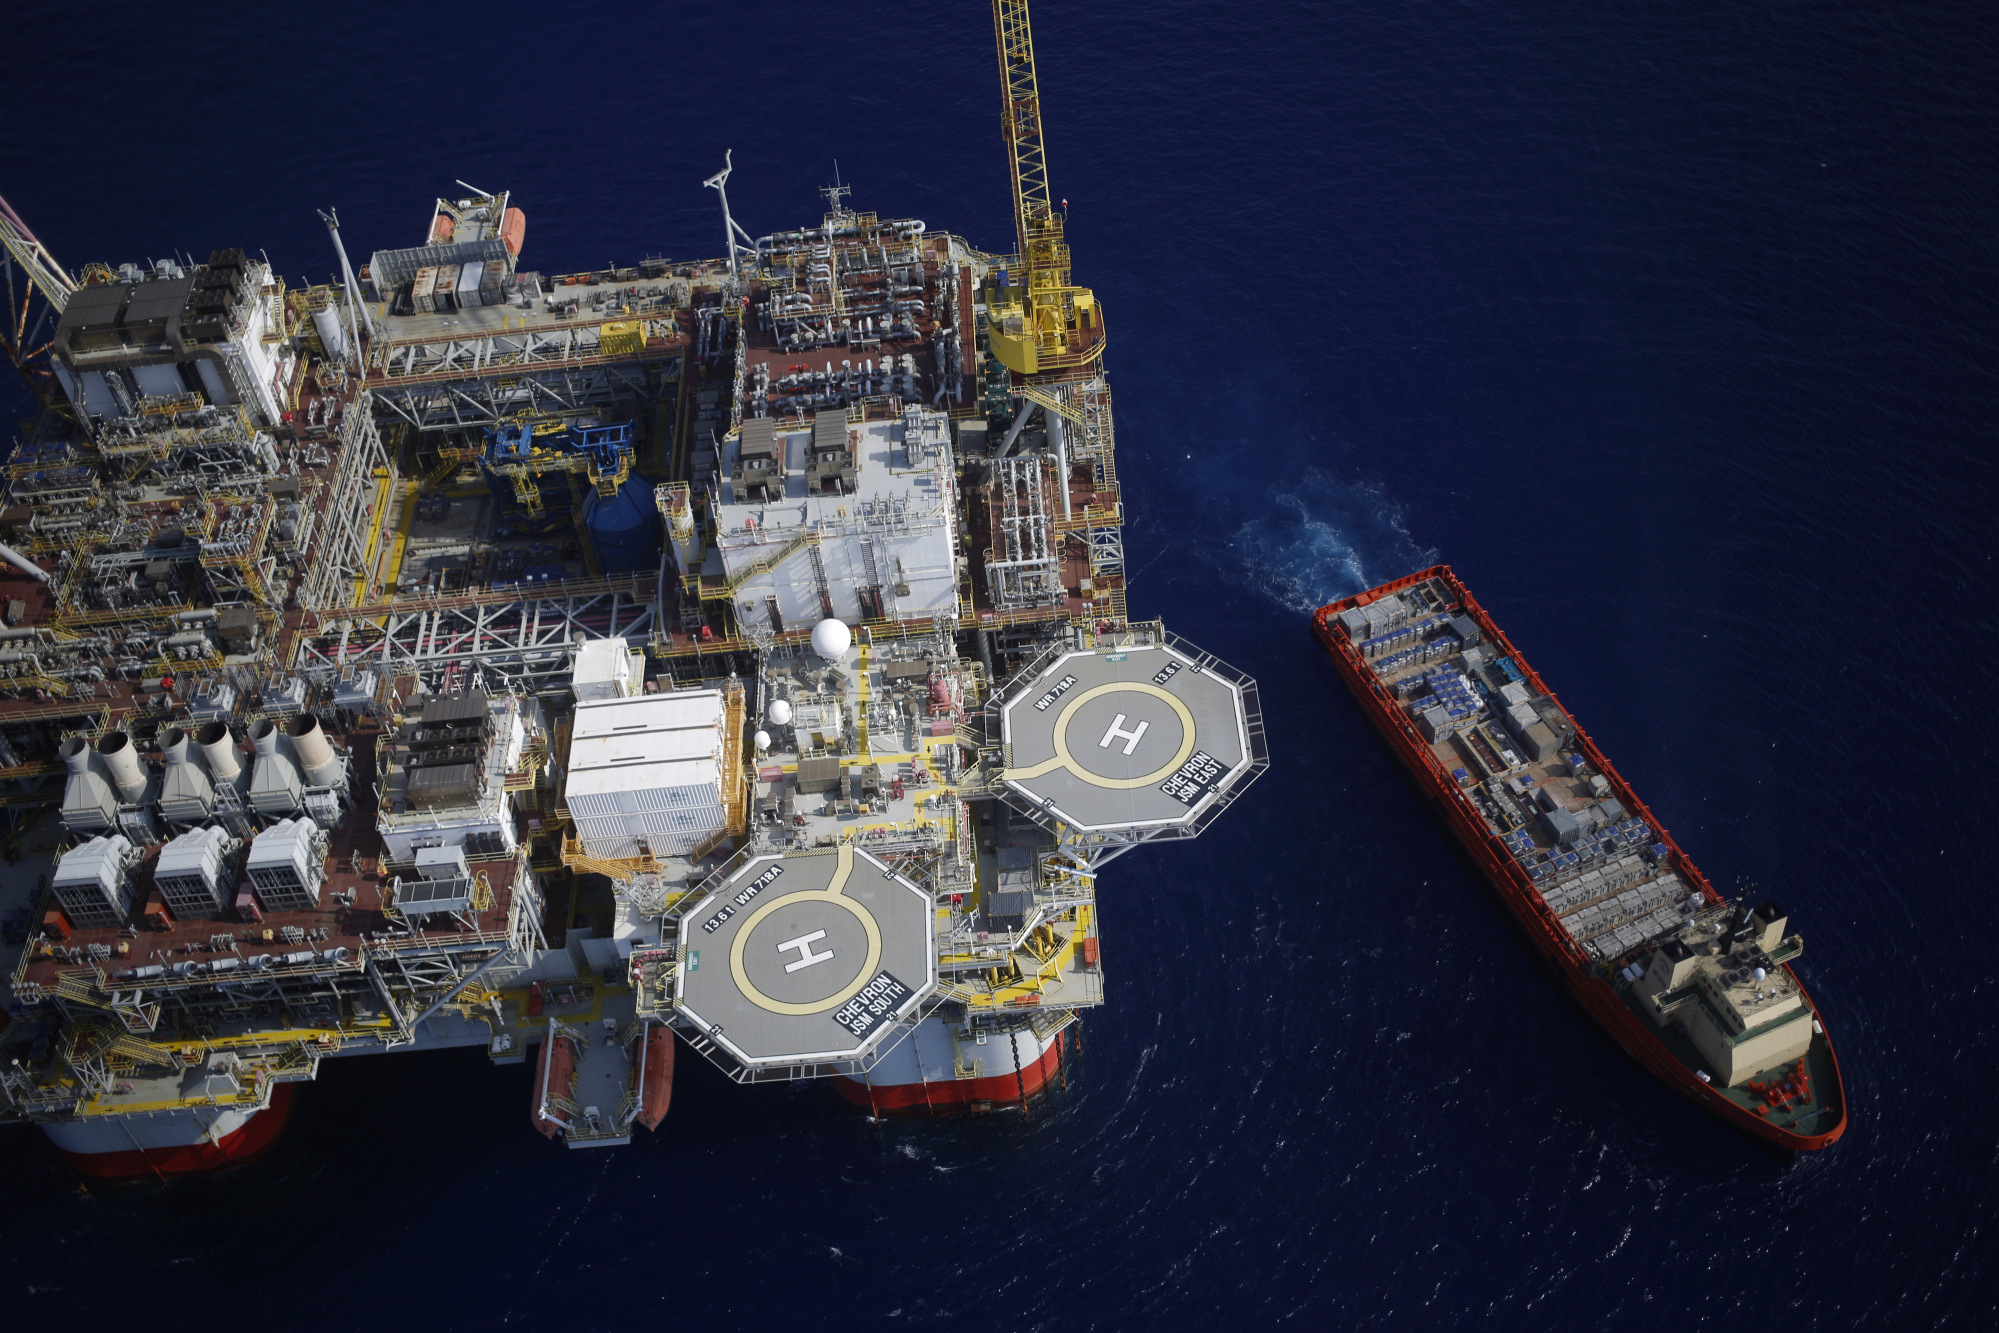 Workers have returned to oil platforms which were evacuated ahead of the storm